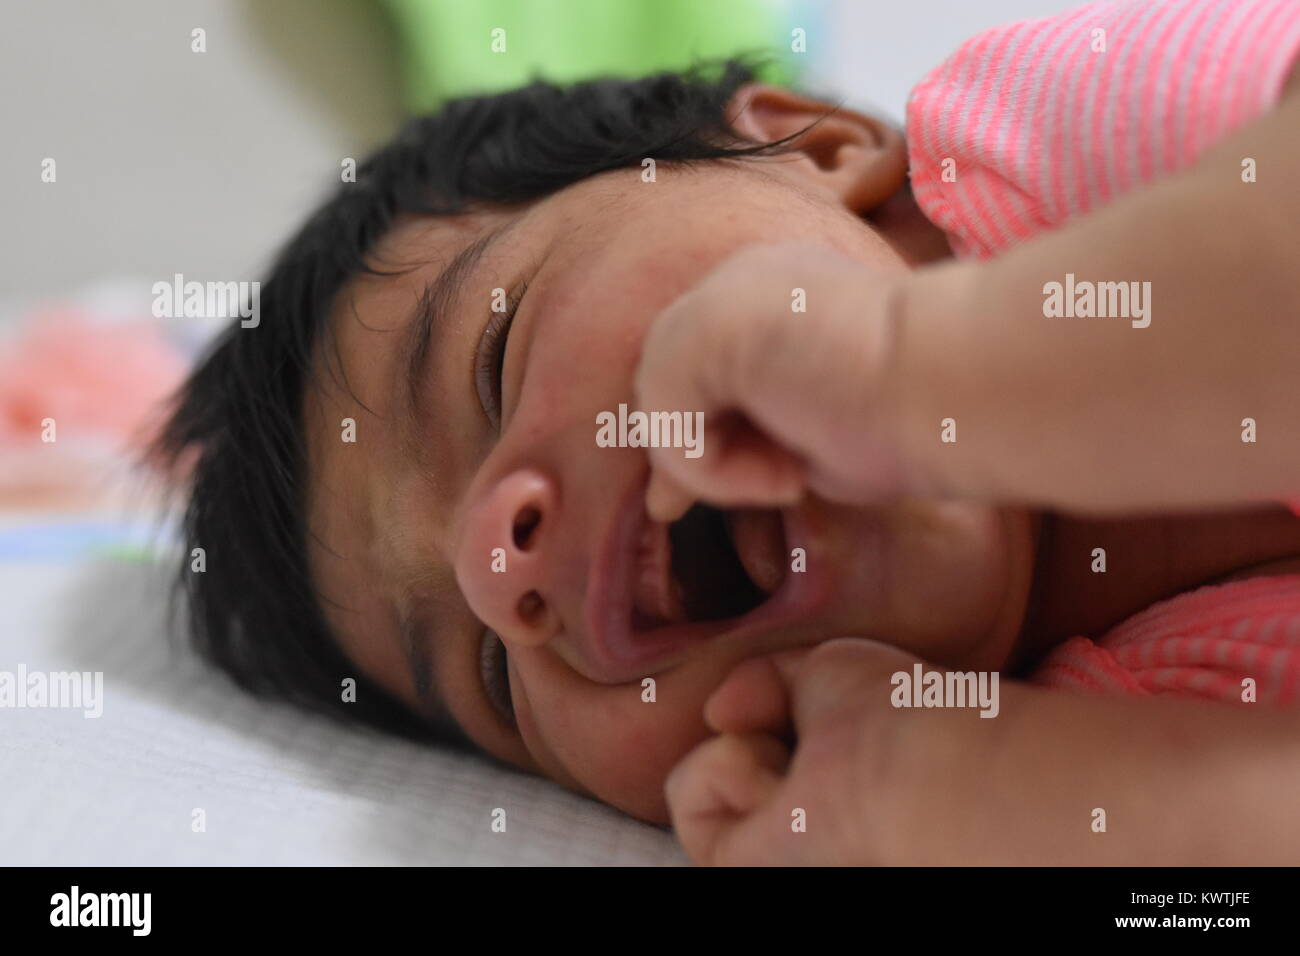 Newborn teething showing discomfort with open mouth - Stock Image